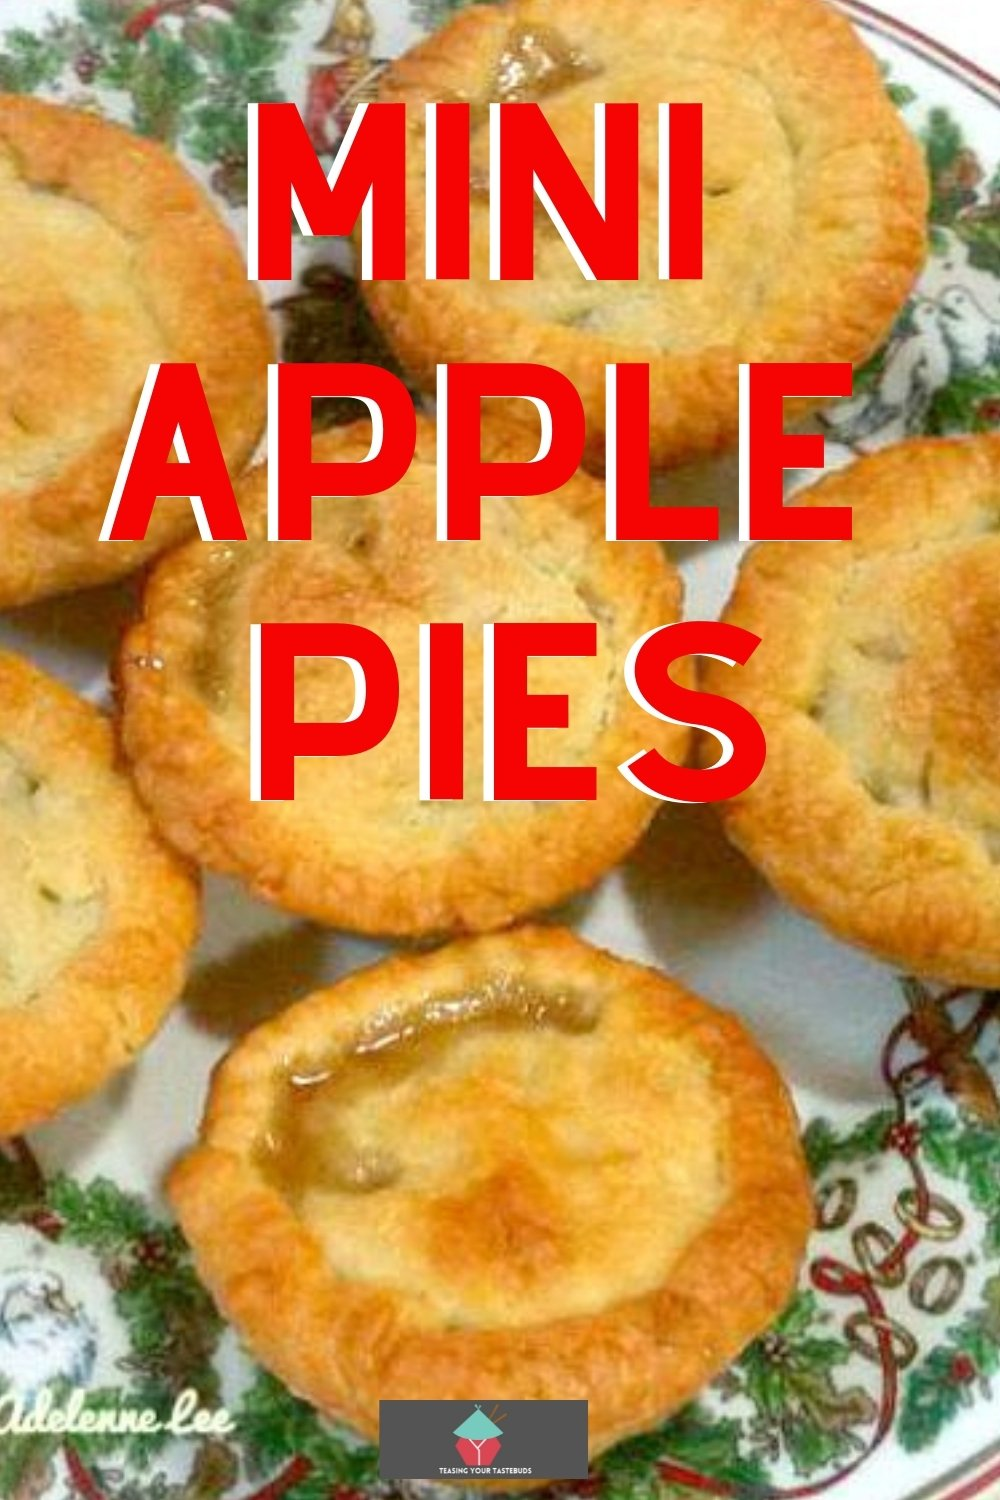 Mini Apple Pies. Easy mini apple pies are delicious homemade small pies with a made from scratch apple filling and a simple pastry case. Ideal for snacks, parties and freezer friendly